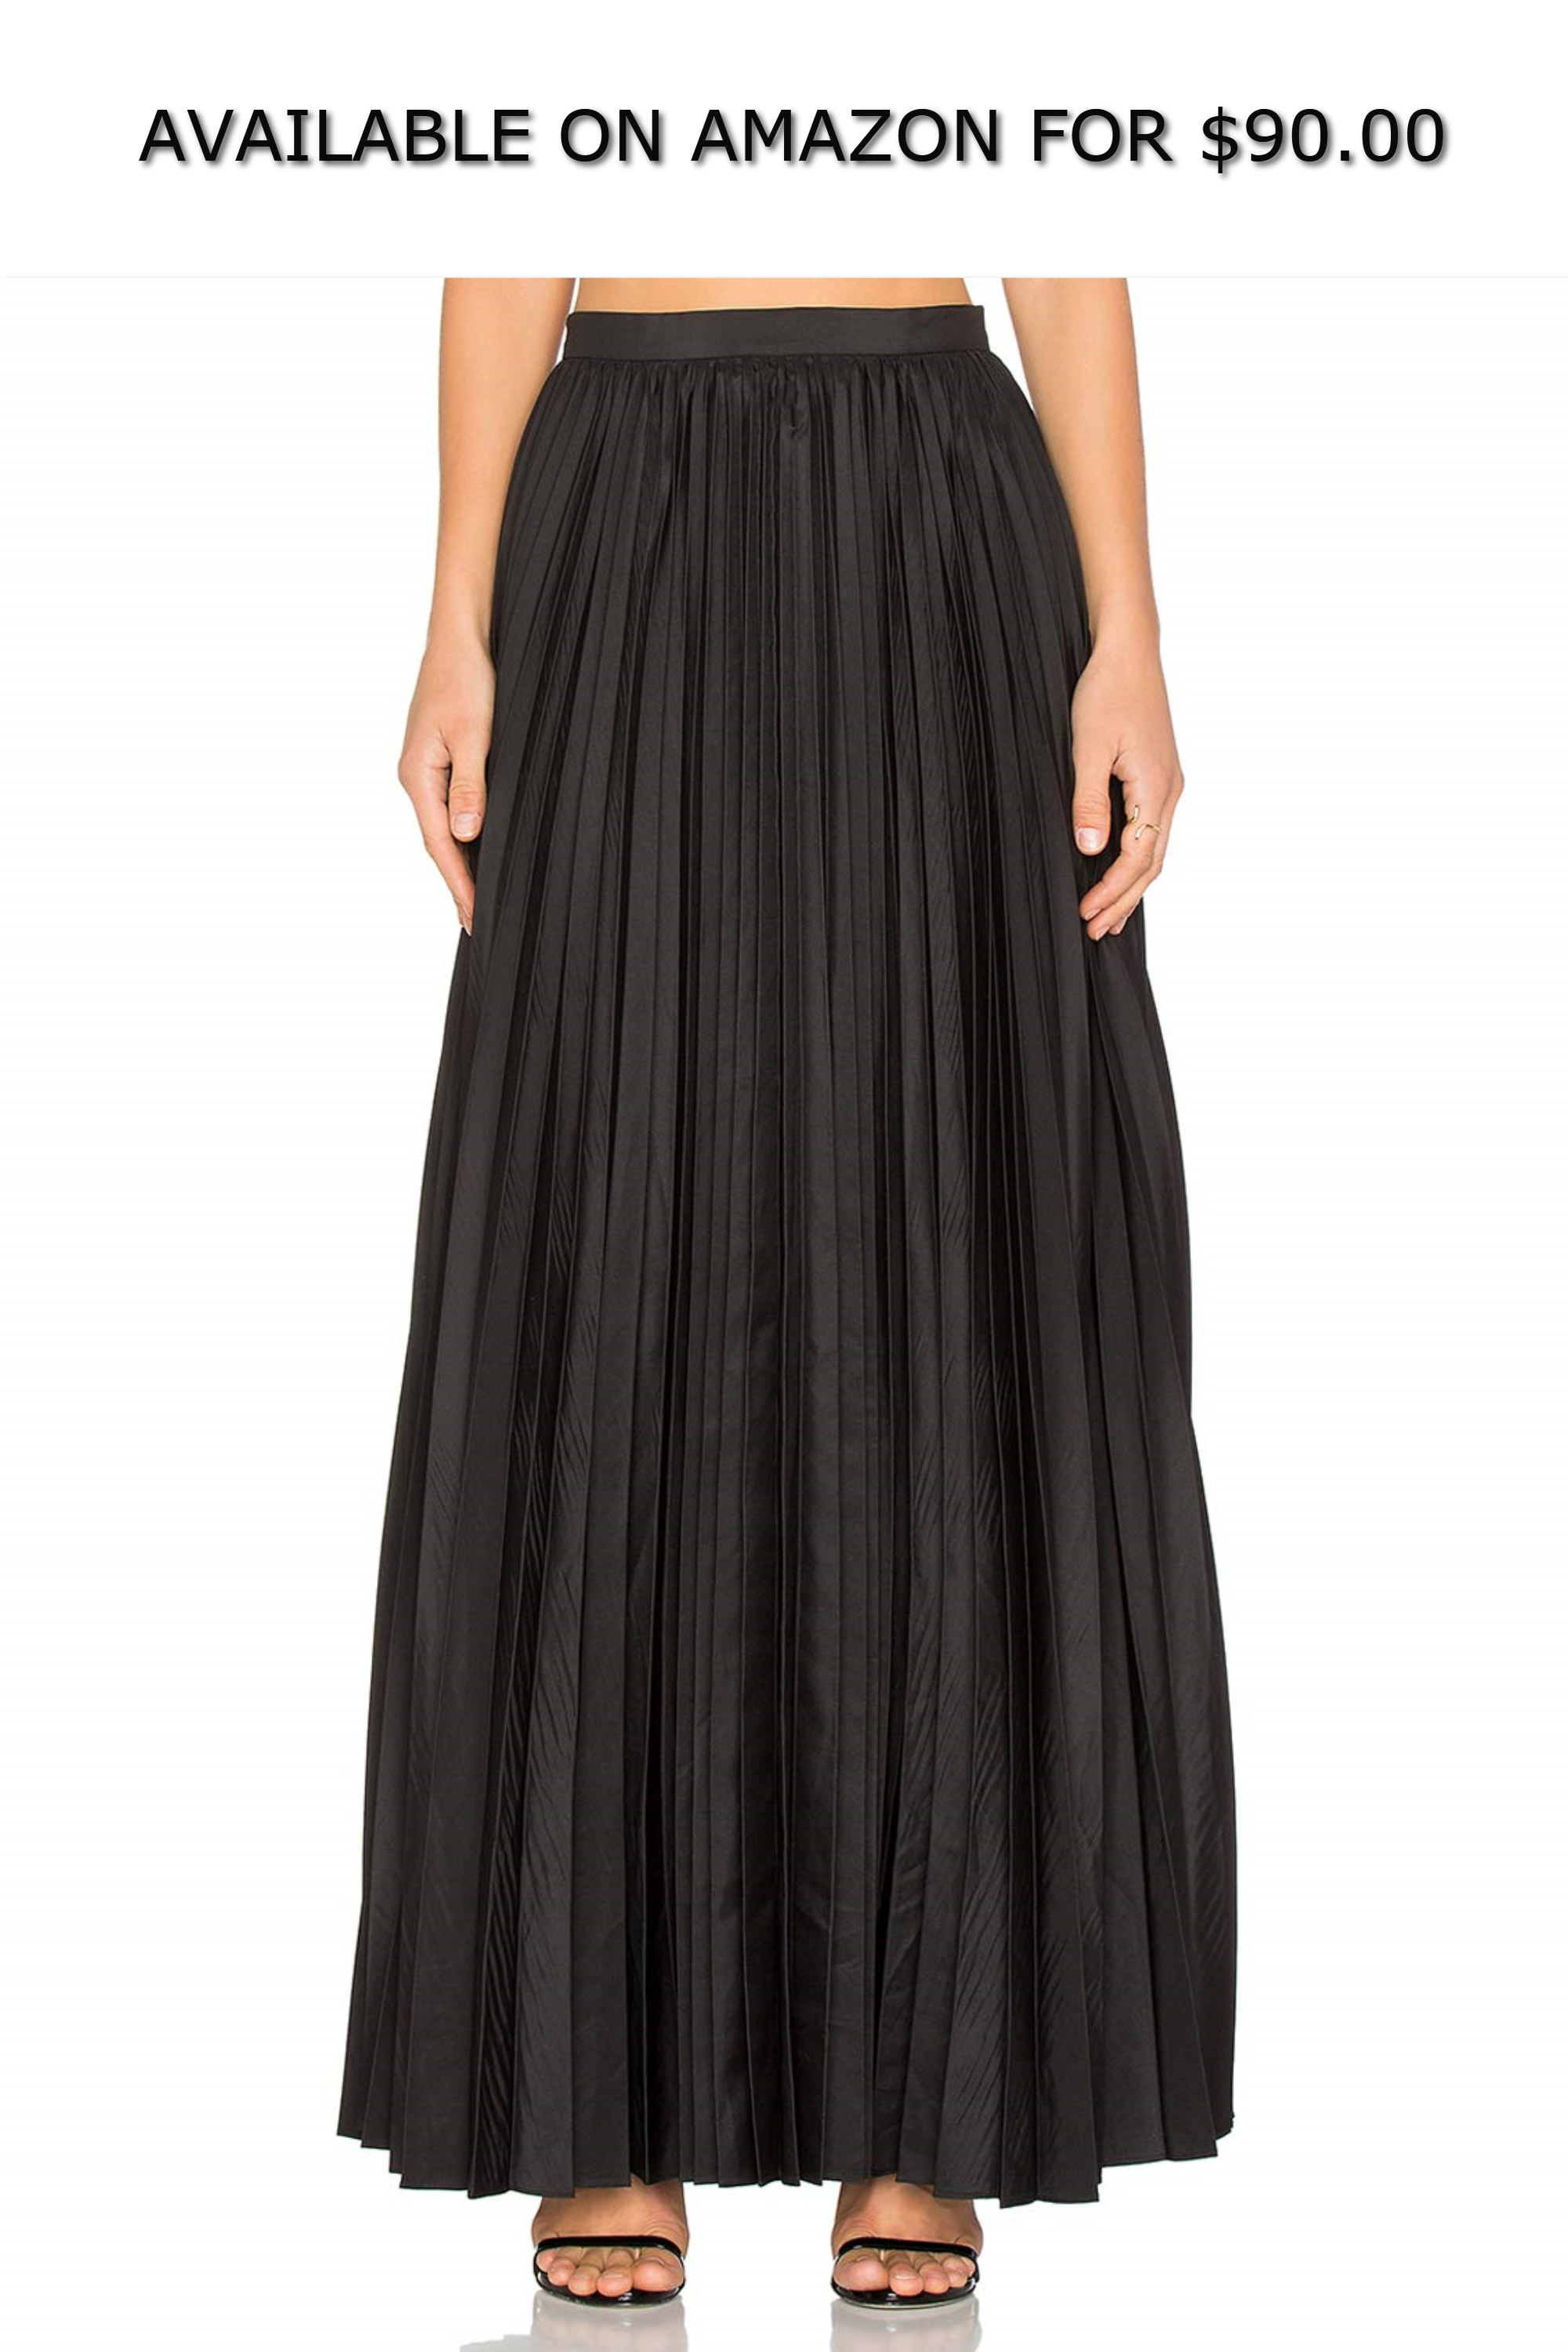 5d827ba38f Blaque Label Womens Pleated Maxi Skirt Black Extra Small ◇ AVAILABLE ON AMAZON  FOR: $90.00